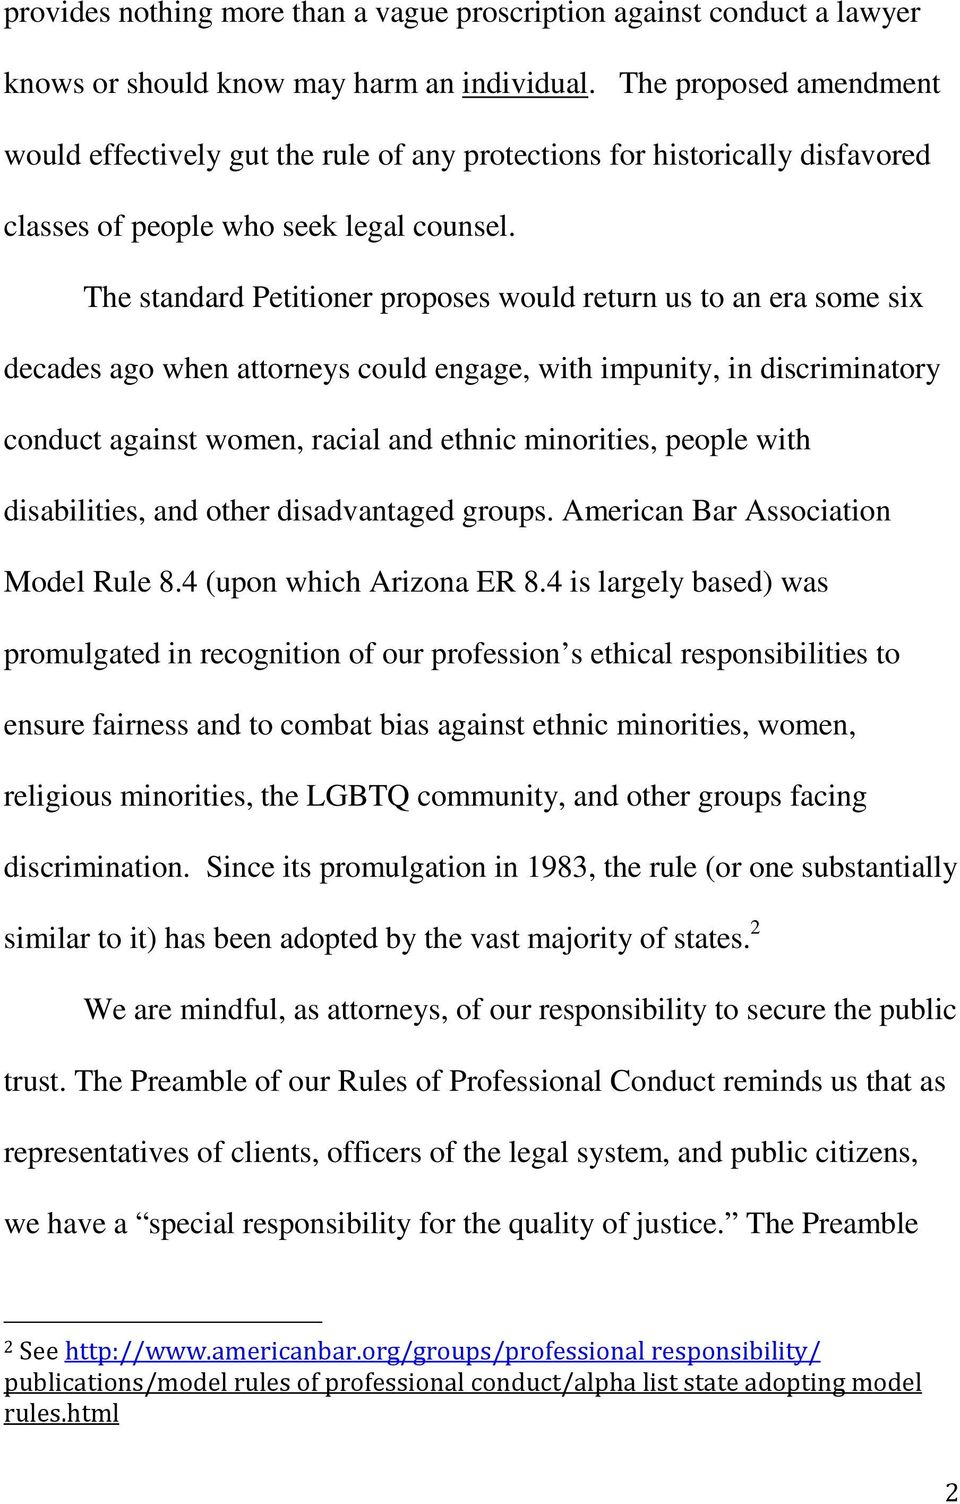 The standard Petitioner proposes would return us to an era some six decades ago when attorneys could engage, with impunity, in discriminatory conduct against women, racial and ethnic minorities,